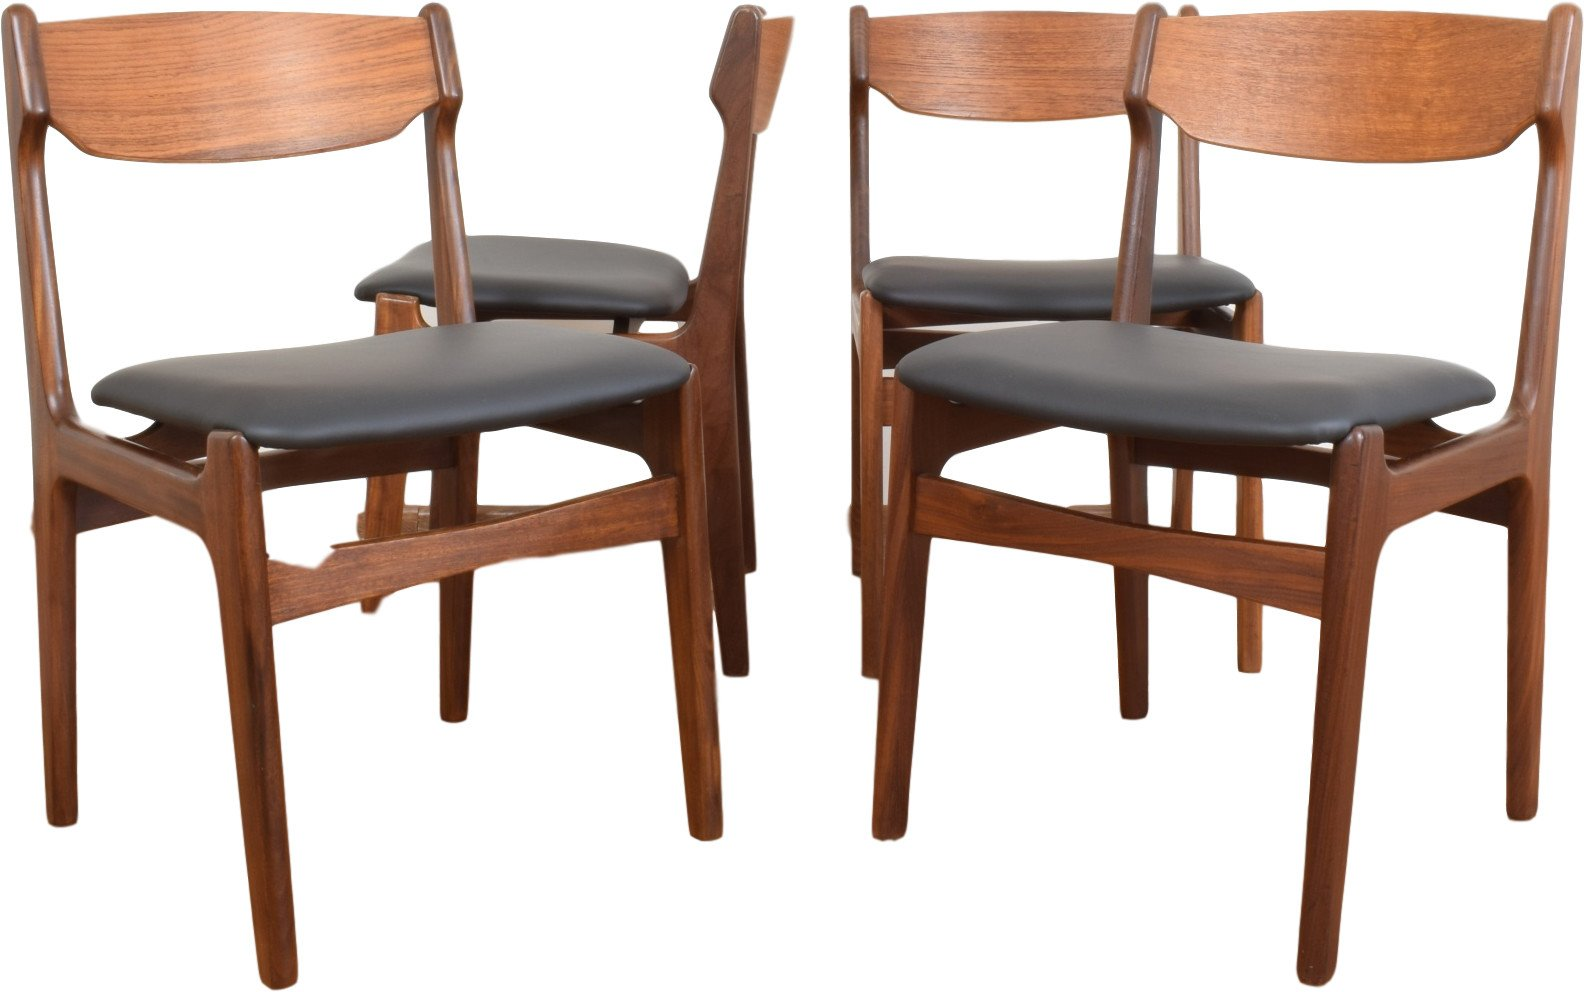 Set of Four Chairs by E. Buch, Denmark, 1960s